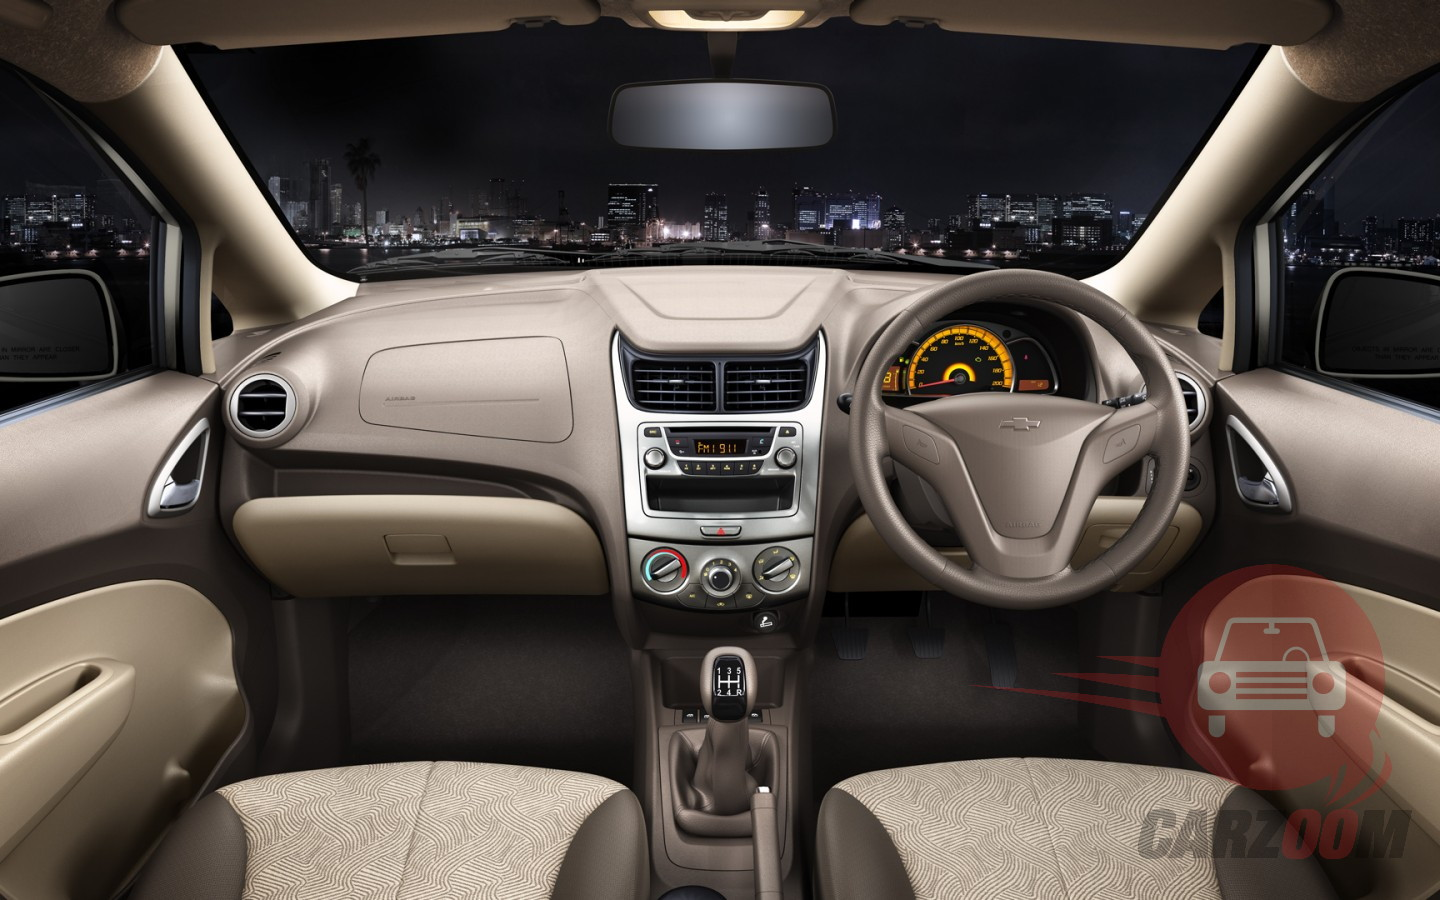 Chevrolet Sail Interiors Dashboard